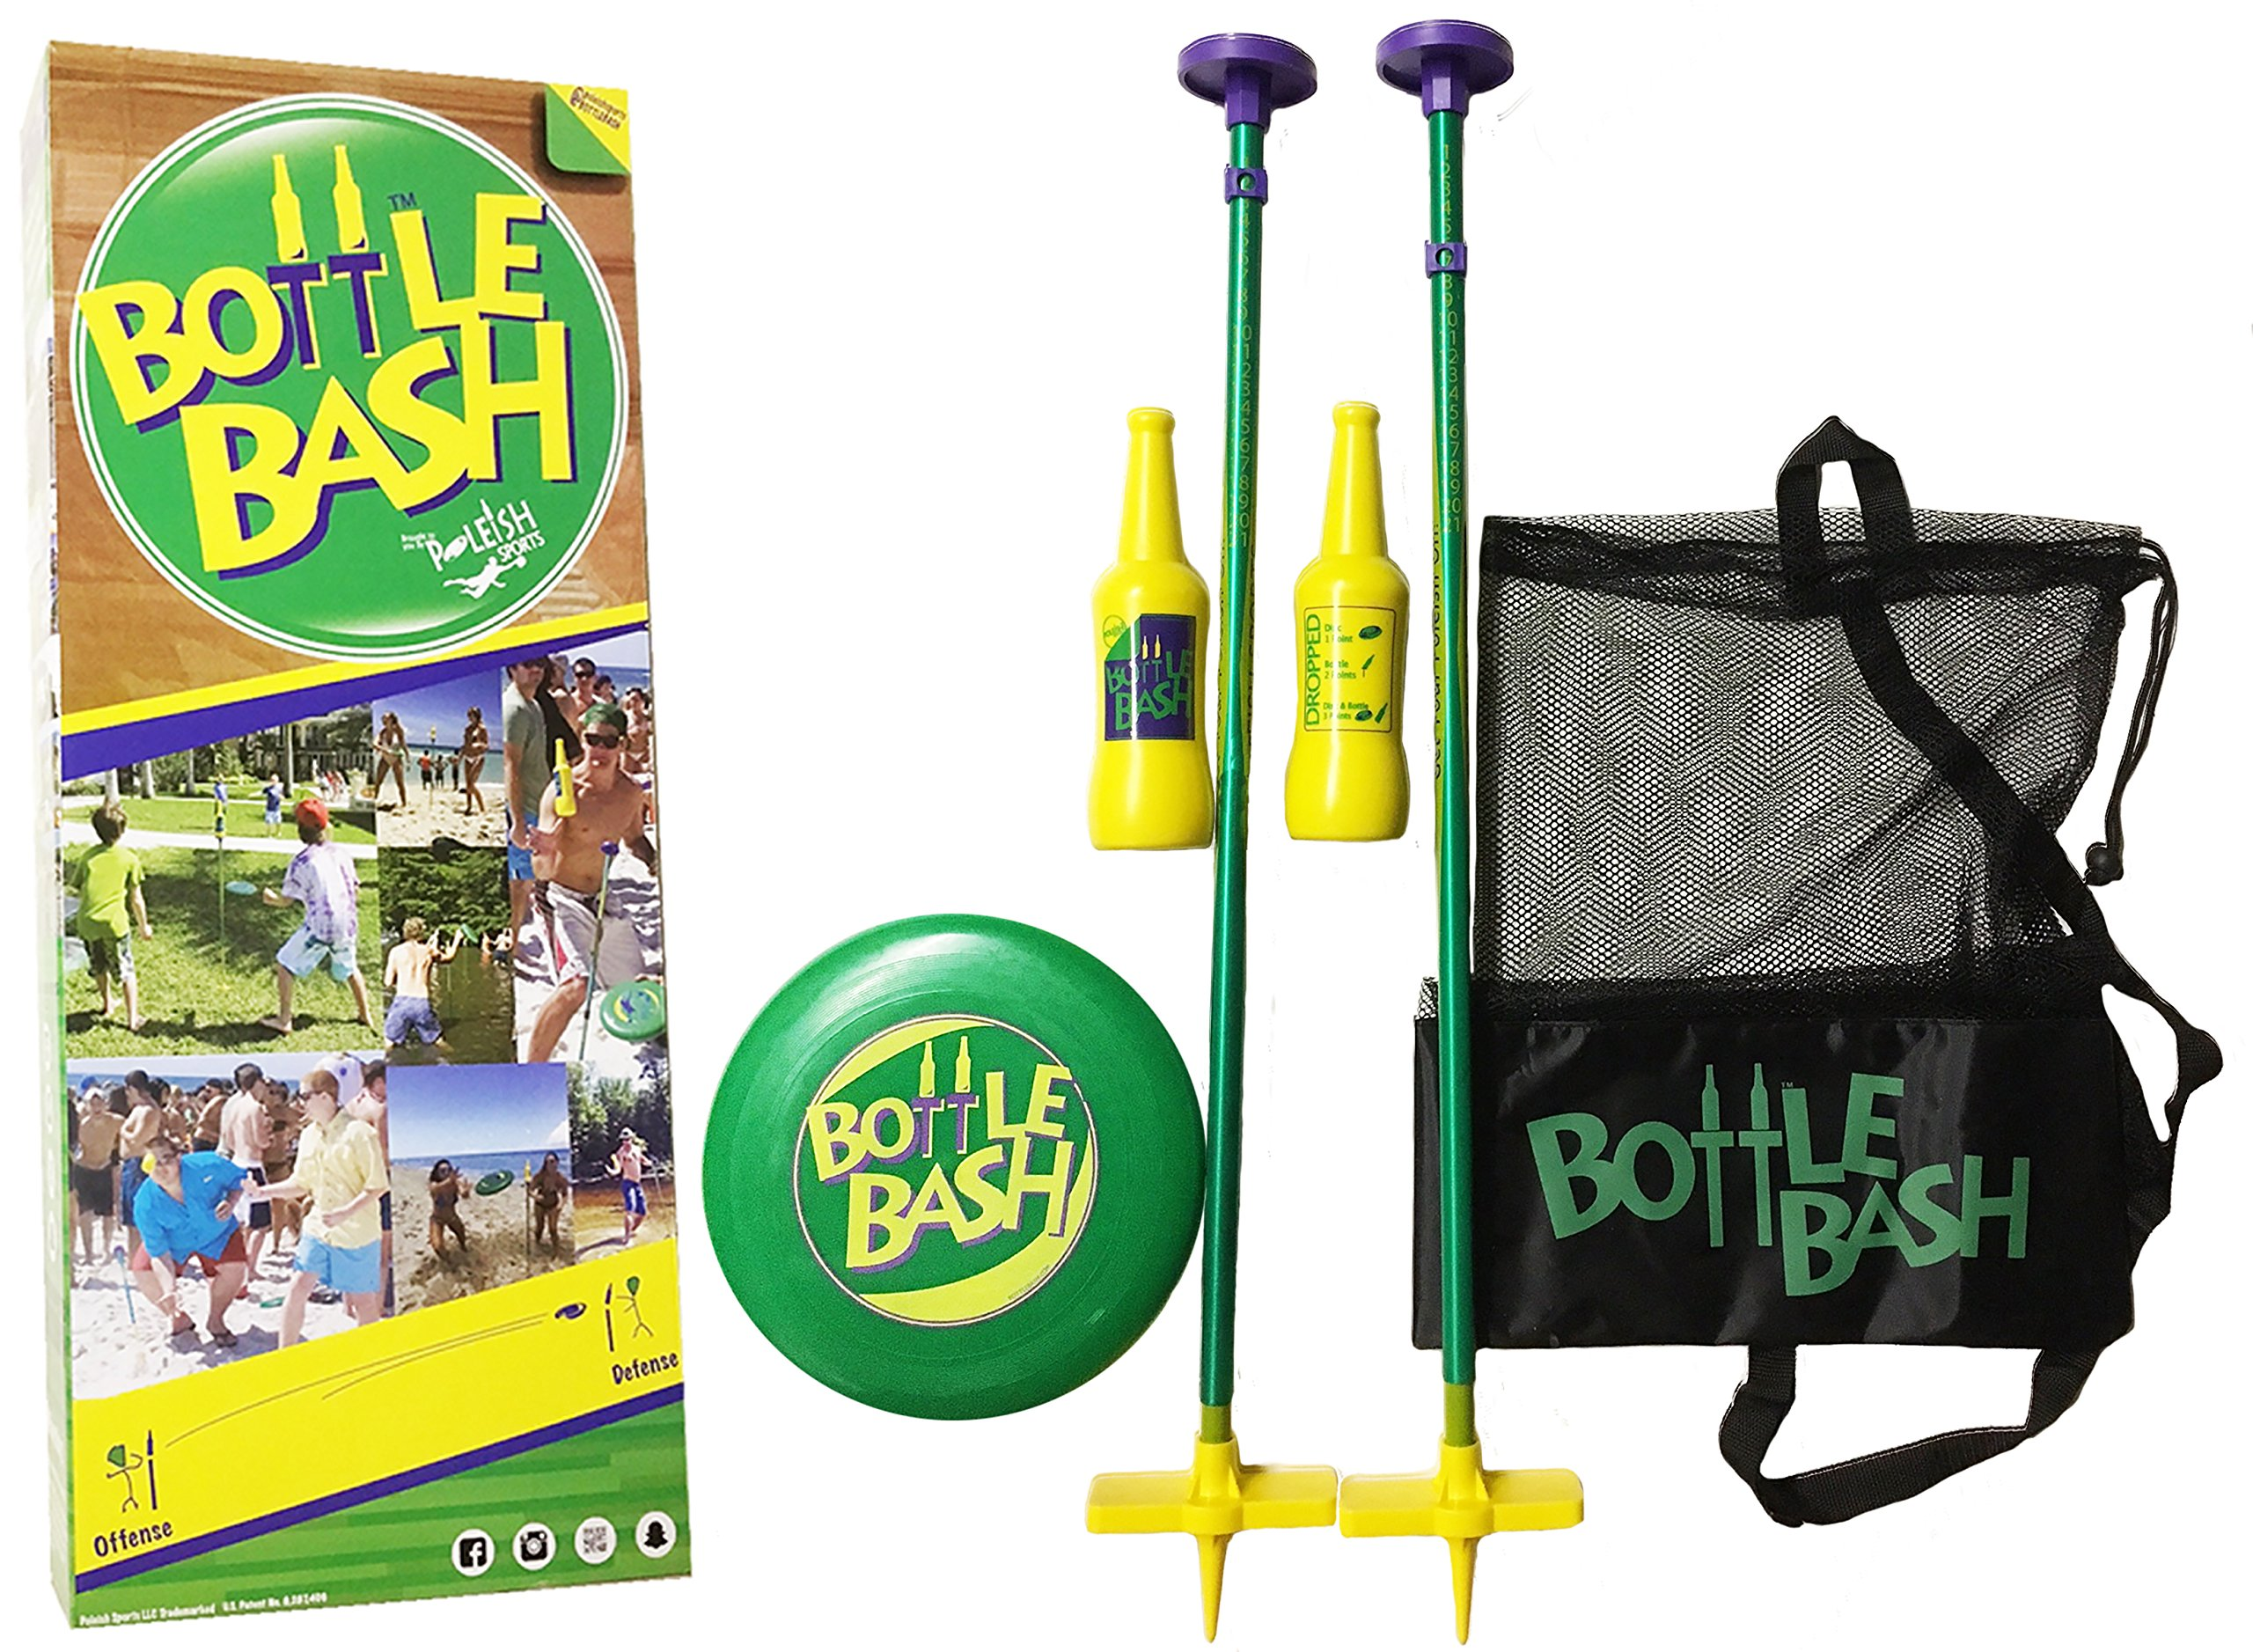 Bottle Bash Standard Game Set with Soft Surface Spike by Poleish Sports